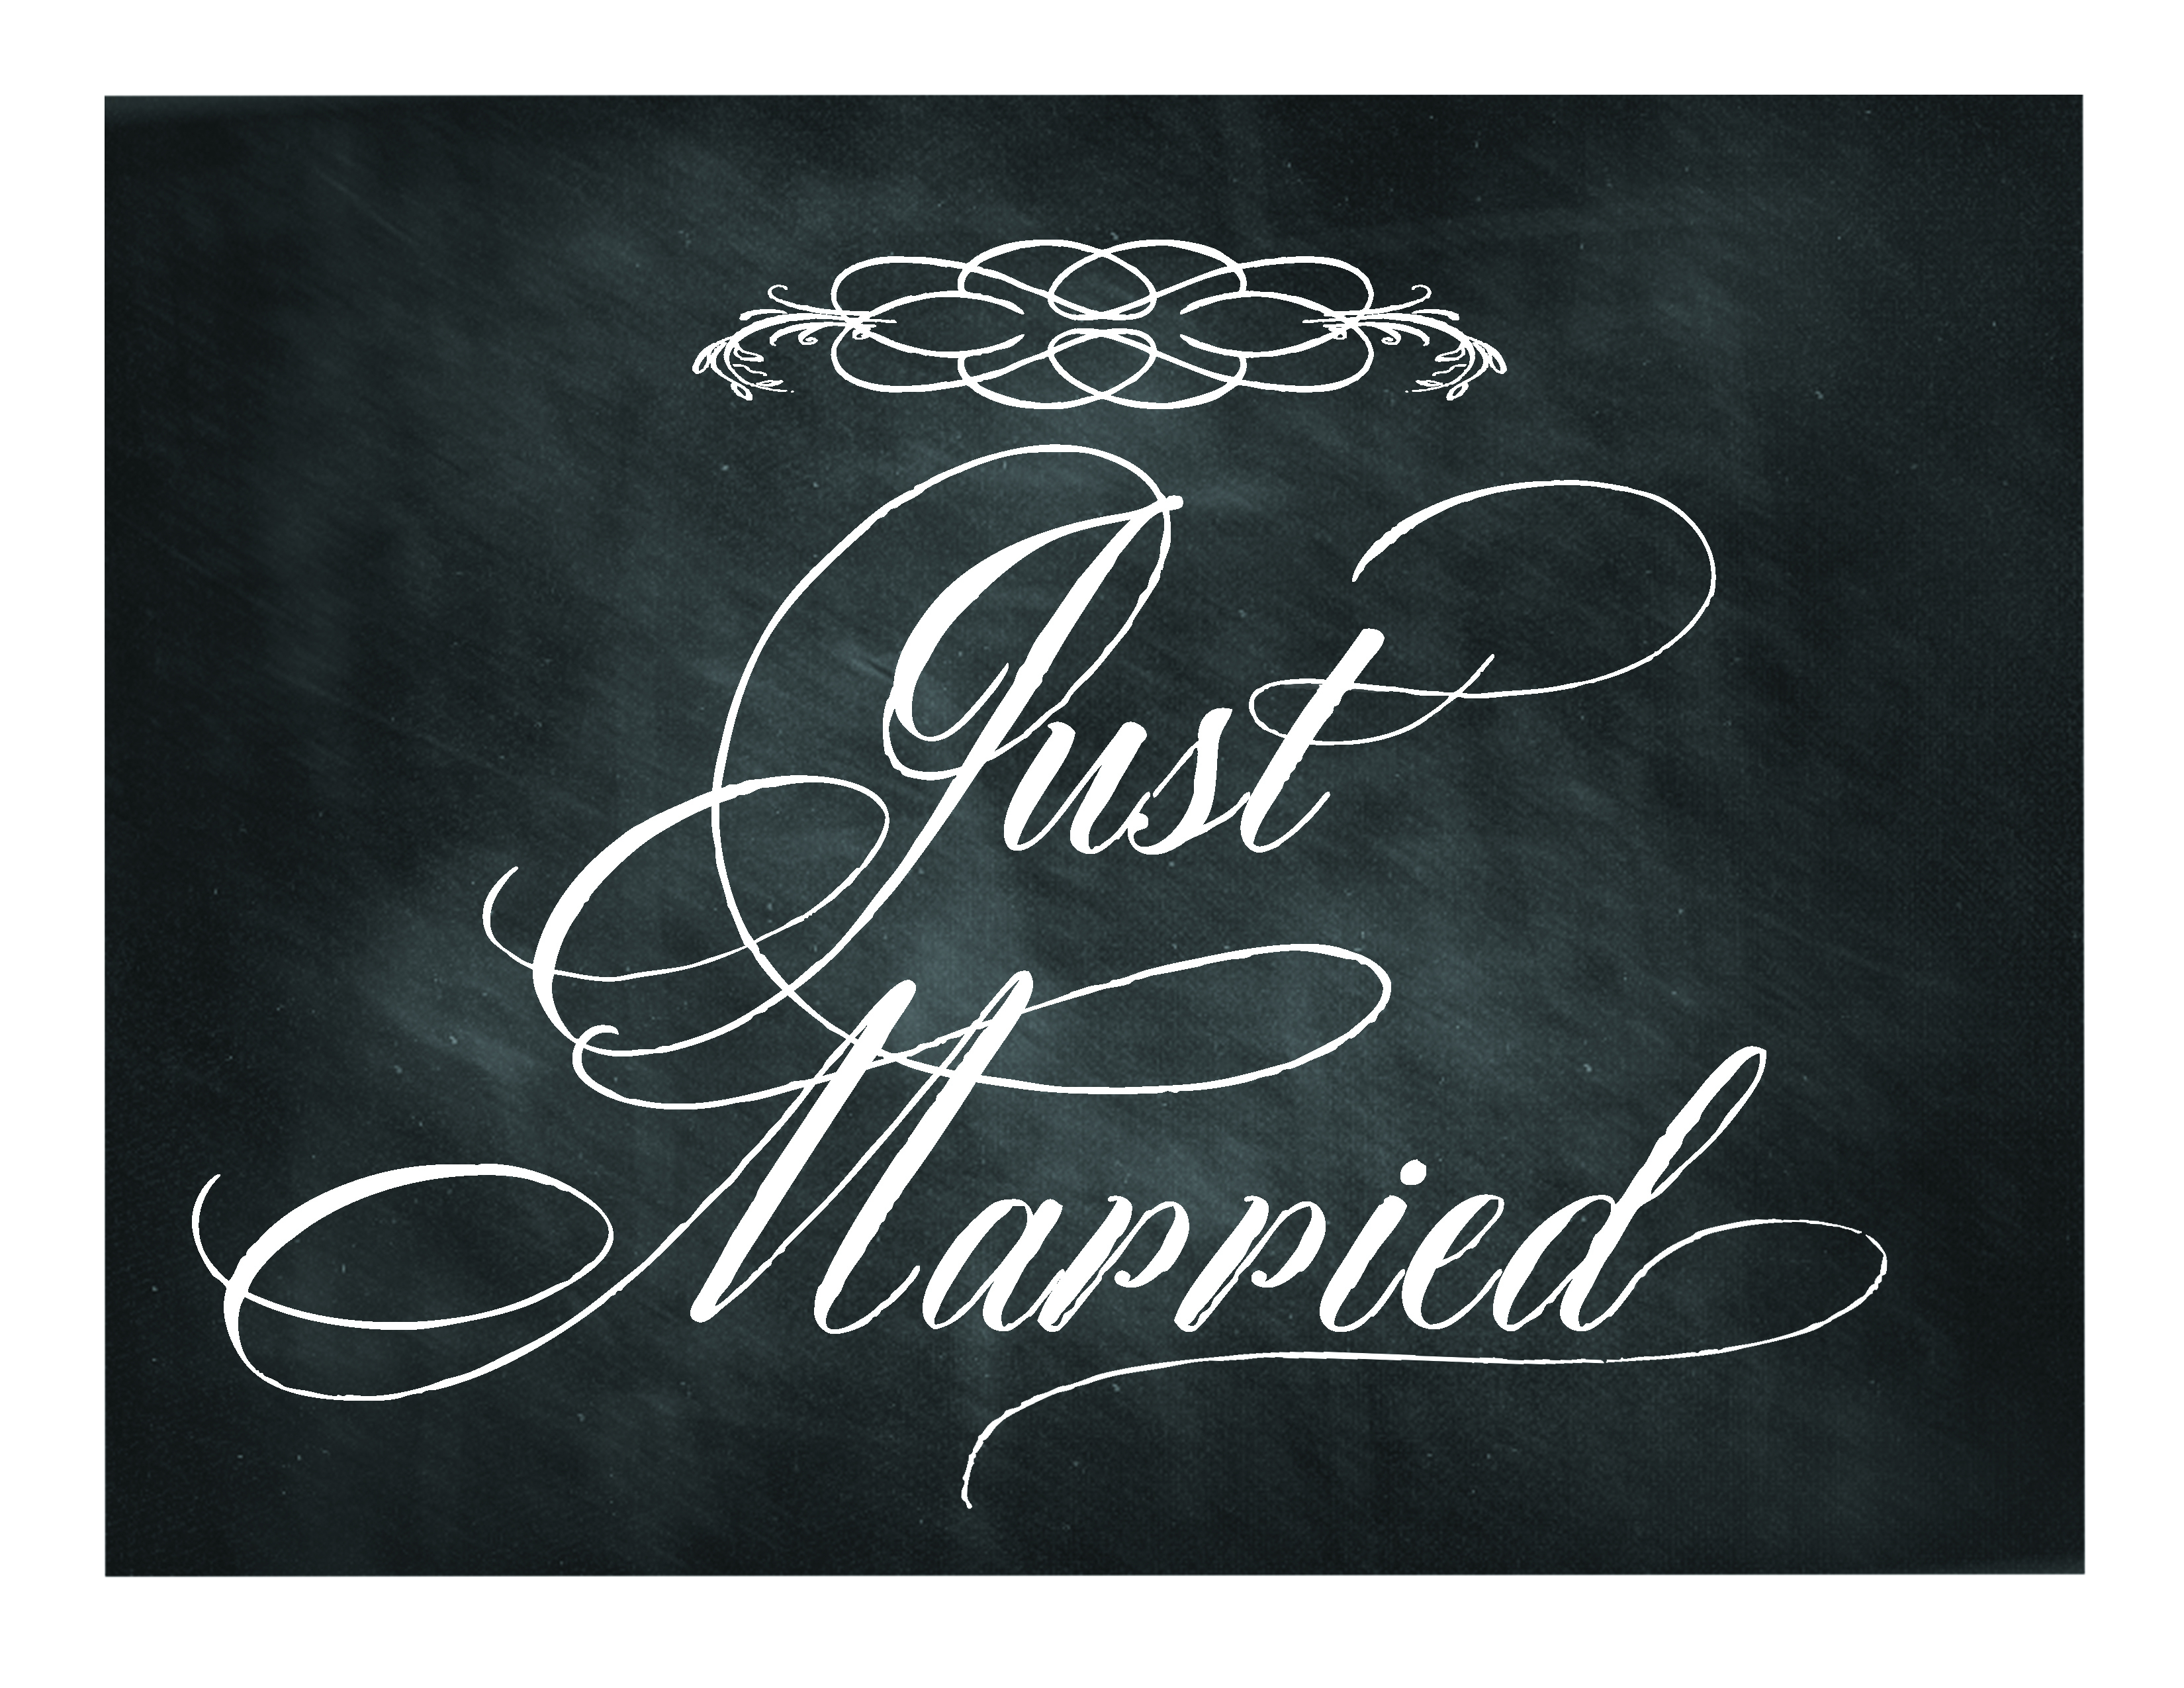 Free Printable Chalkboard Sign: Just Married | Lettering Art Studio - Just Married Free Printable